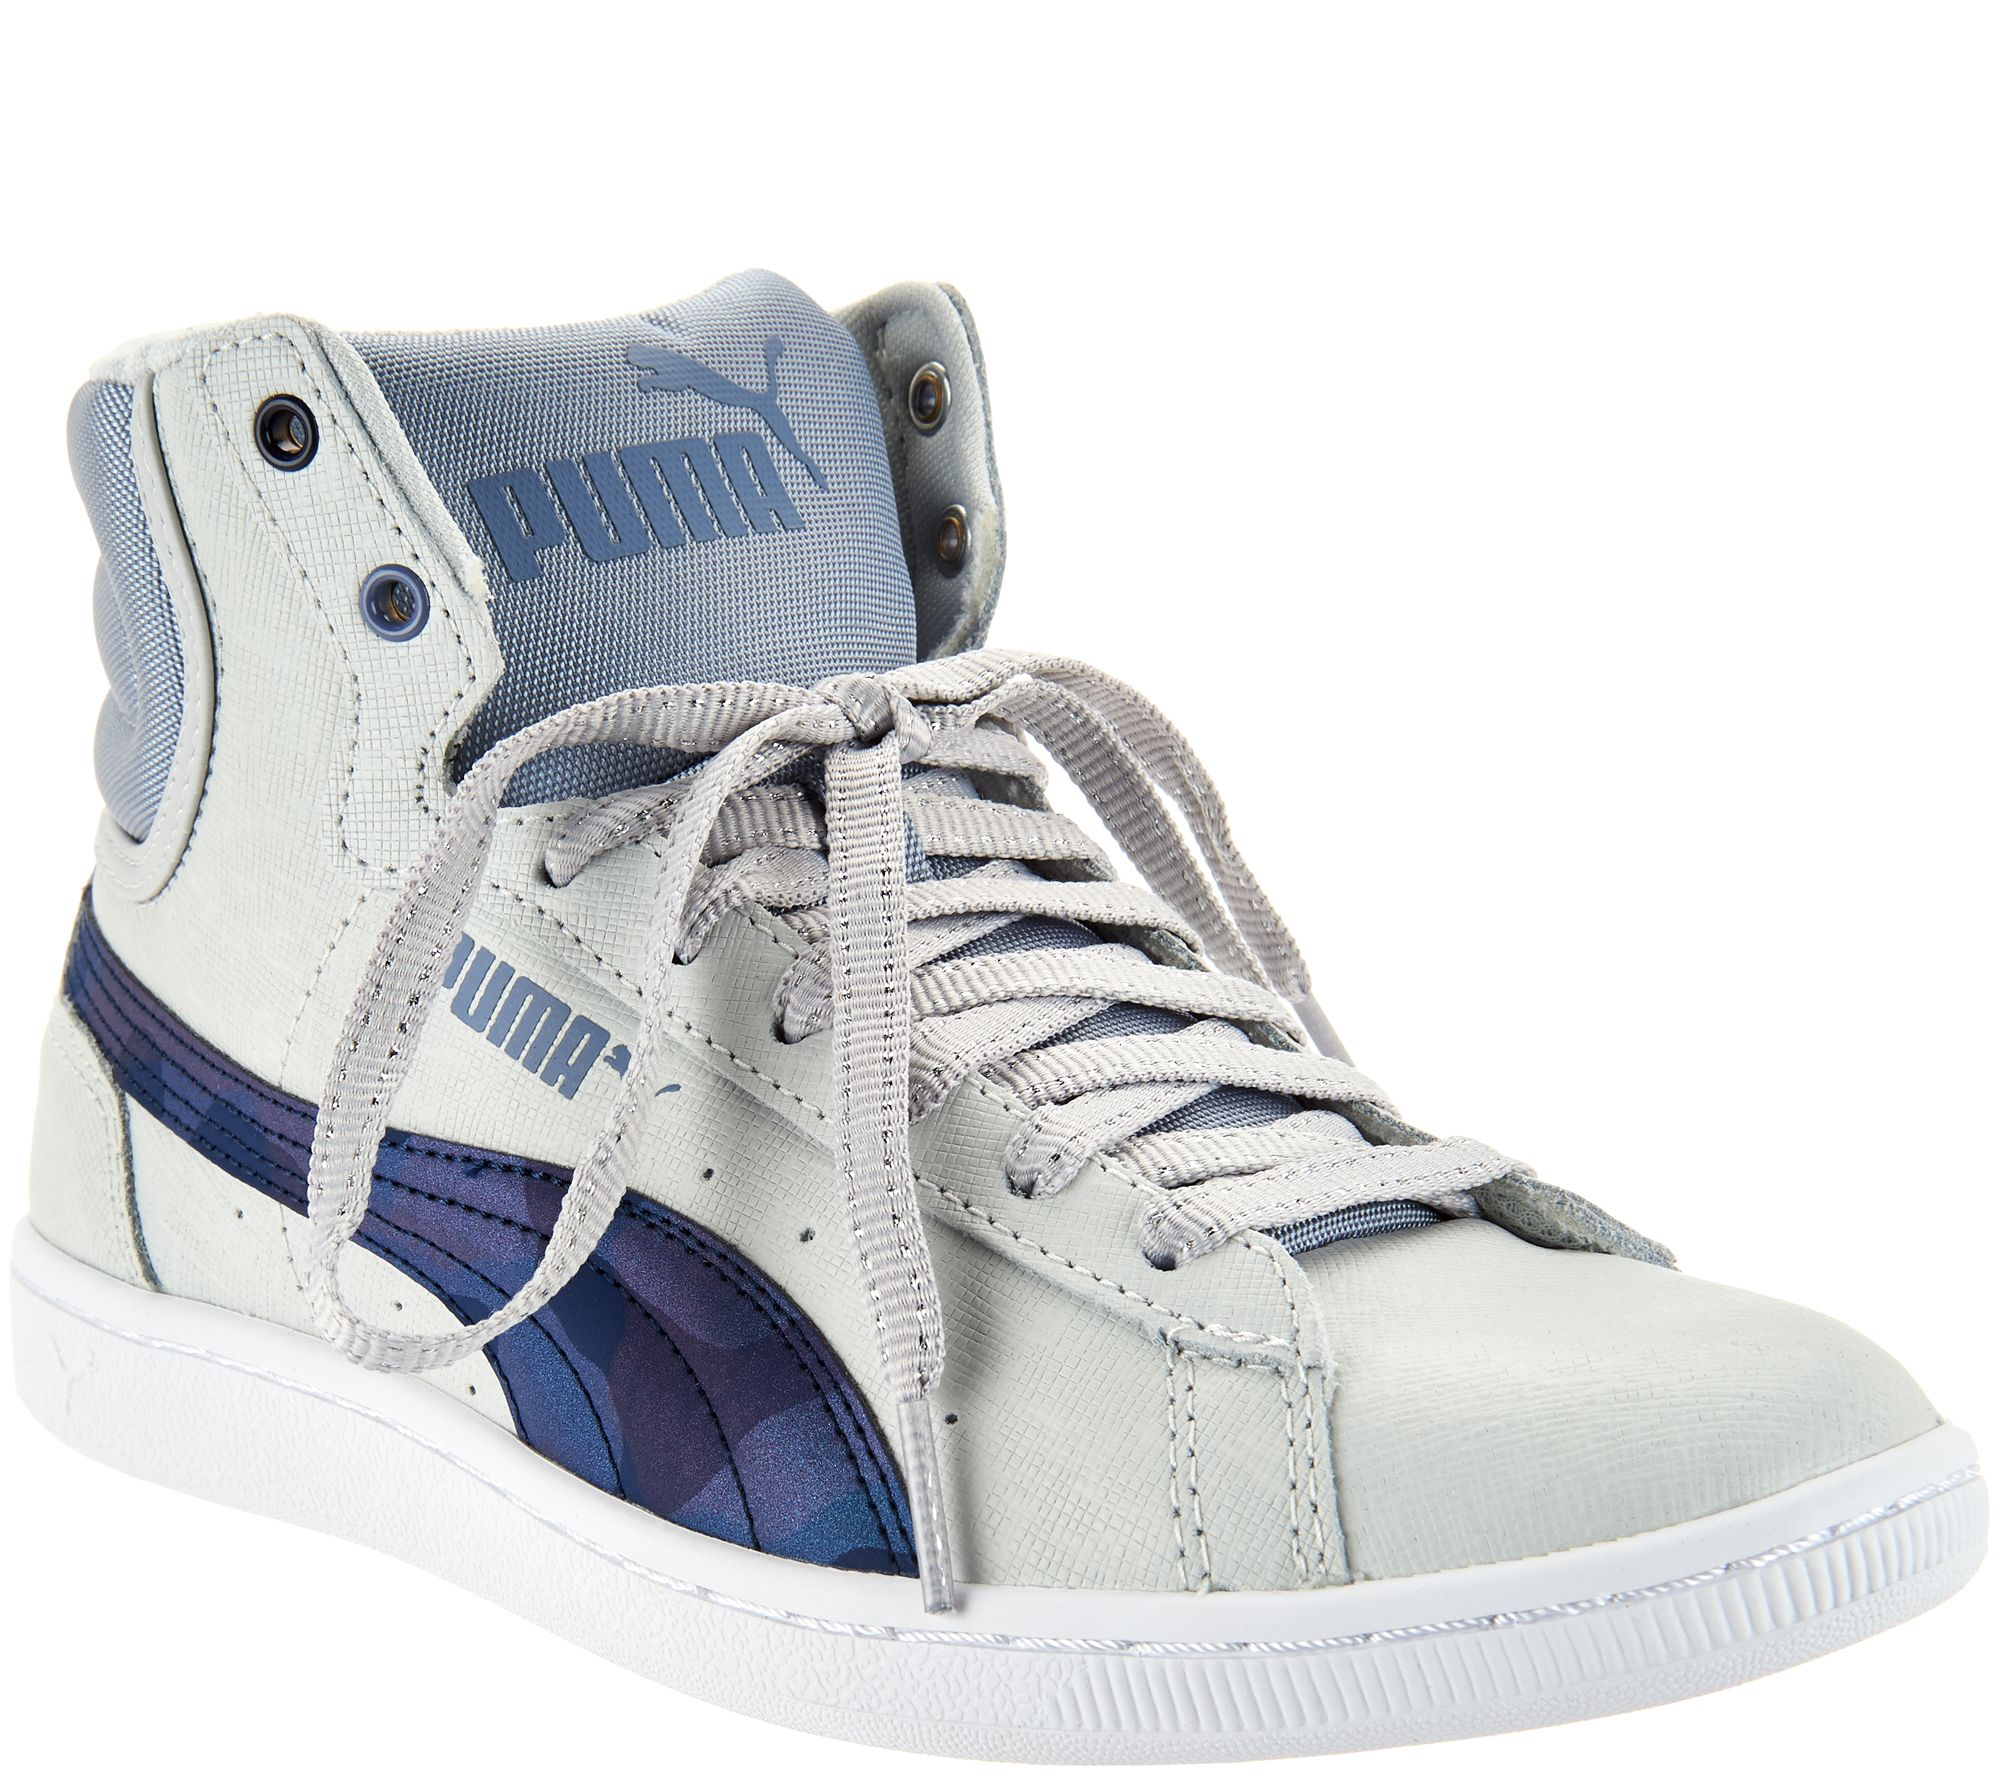 b967ba11c557 PUMA Leather Hightop Sneakers - Vikky Mid Scratch - Page 1 — QVC.com